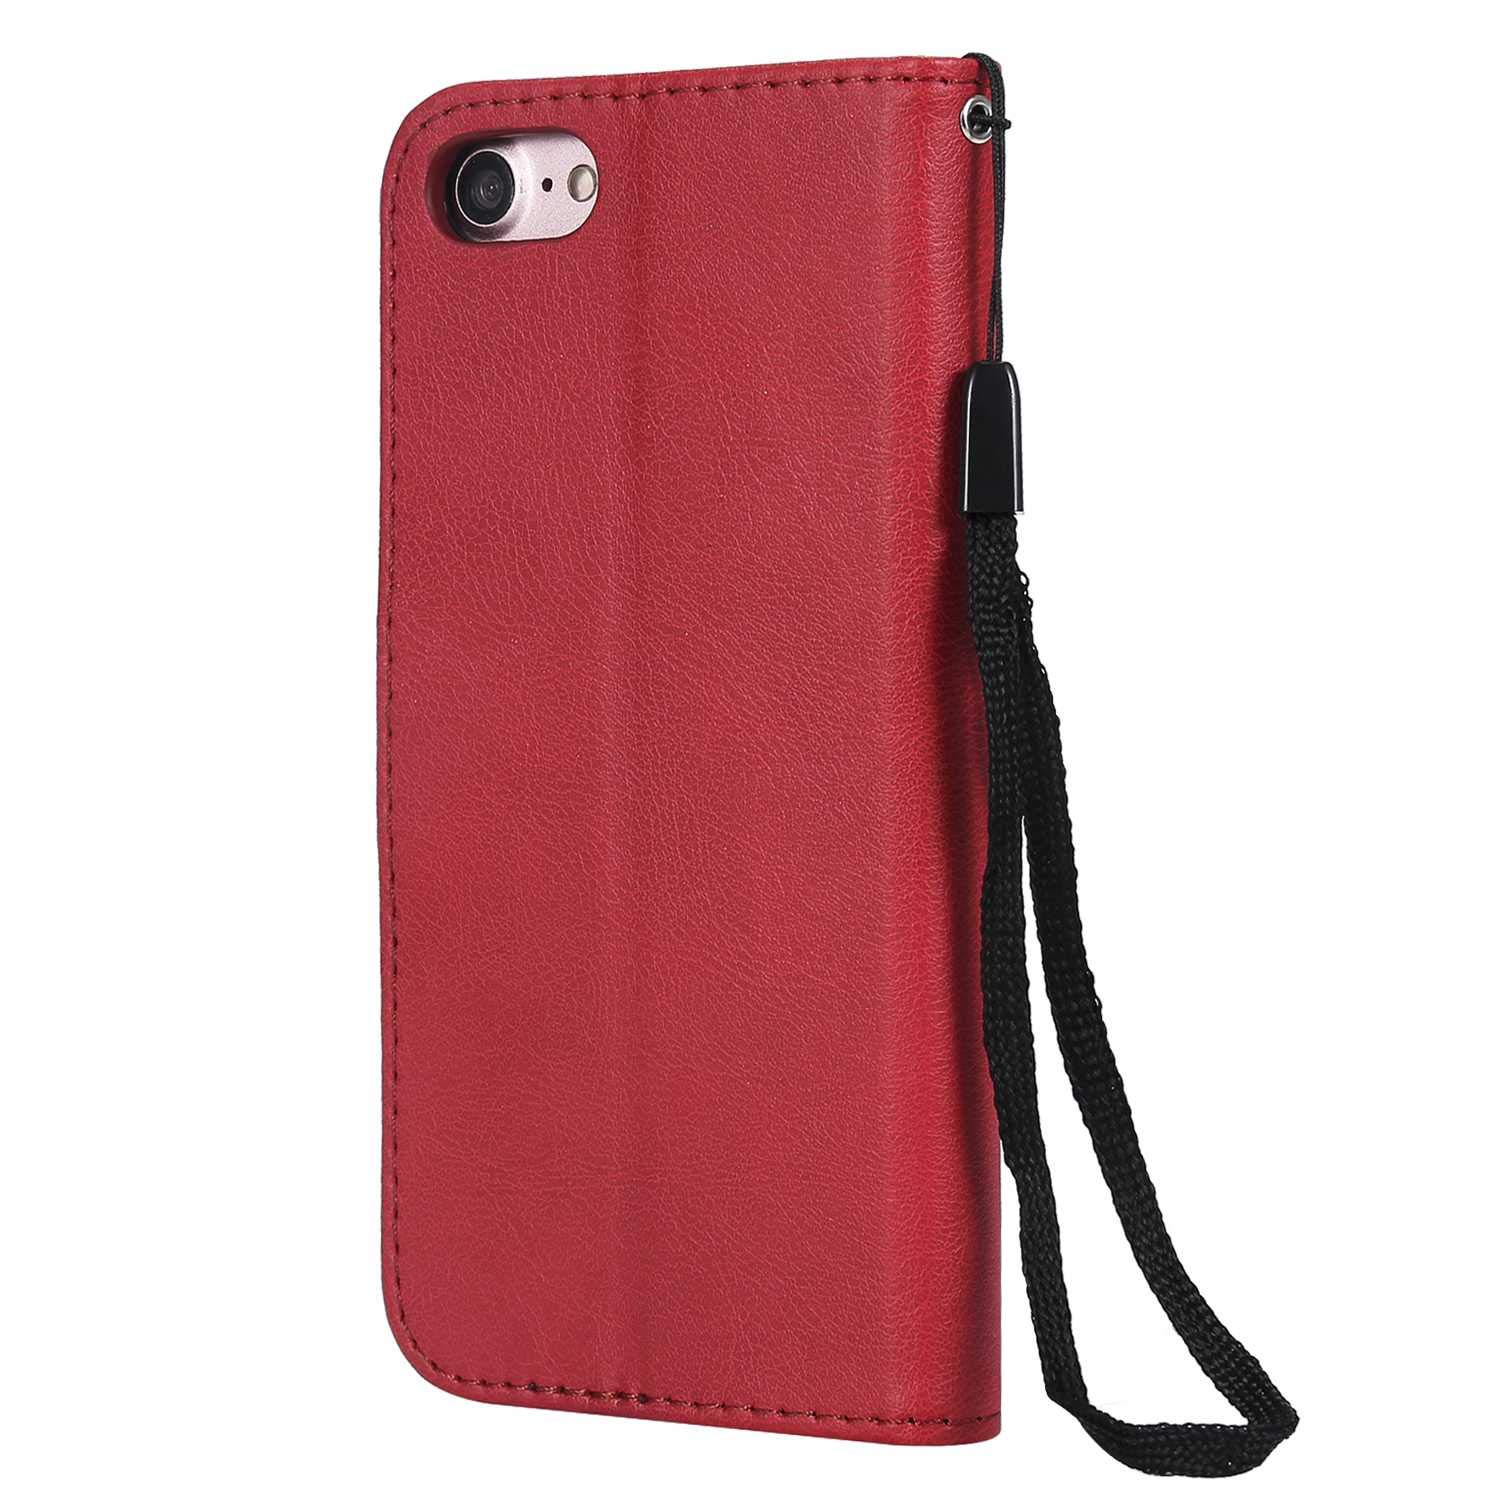 iPhone 7/8 Case, The Grafu Shockproof Leather Wallet Flip Case with [Card Slots] [Wrist Strap] Stand Function Cover for Apple iPhone 7 / iPhone 8, Red by The Grafu (Image #2)